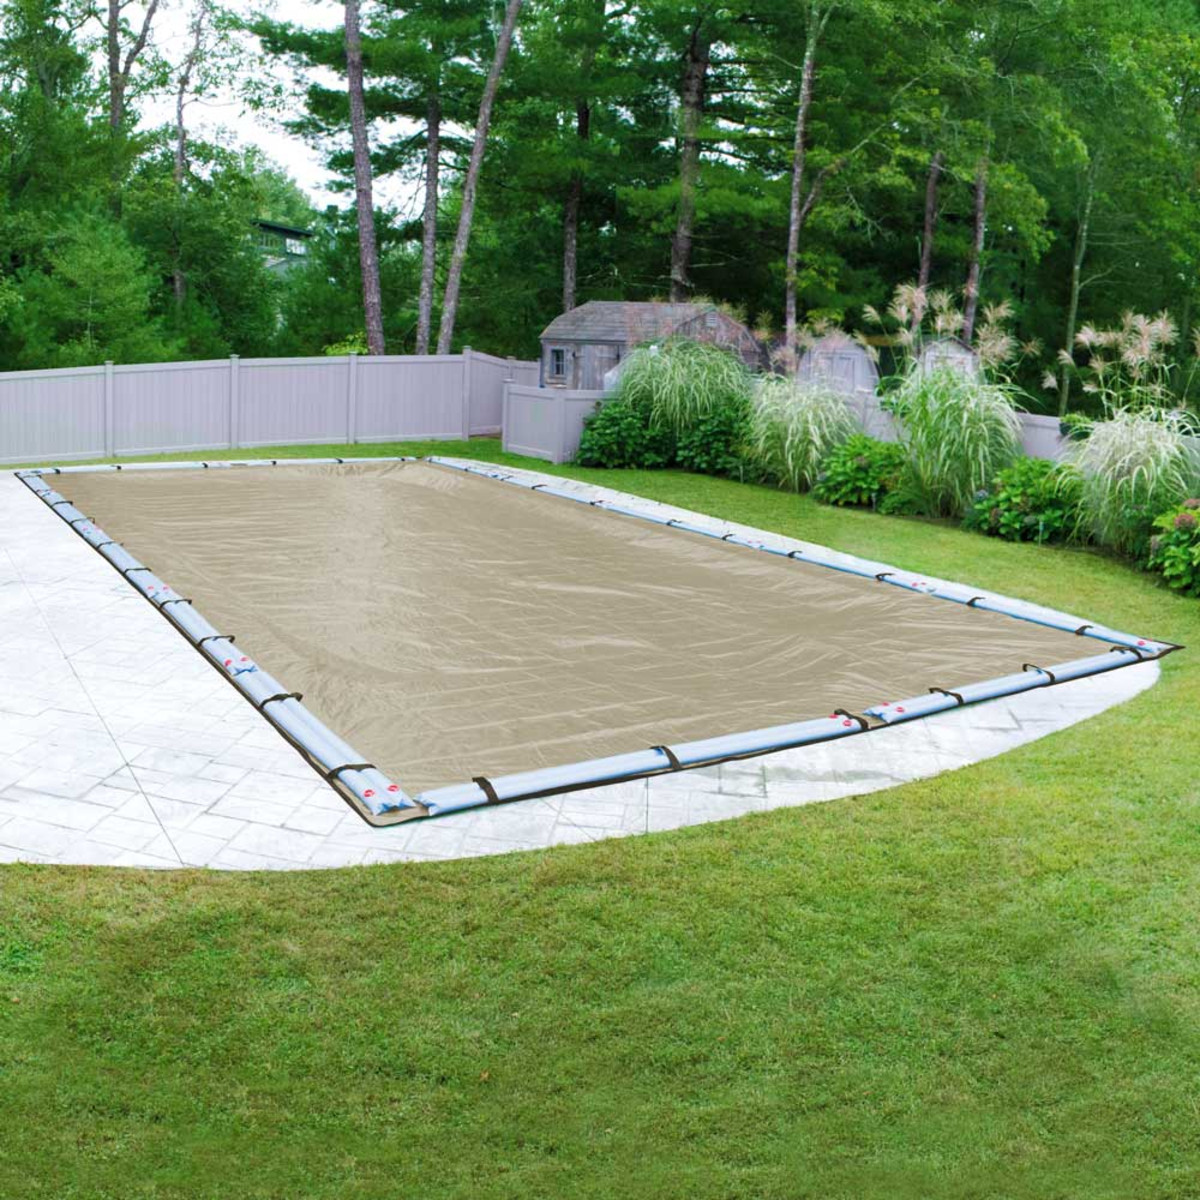 Robelle premium 25 39 x 45 39 rectangular winter pool cover tan in ground pool covers splash for Swimming pool winter cover clips